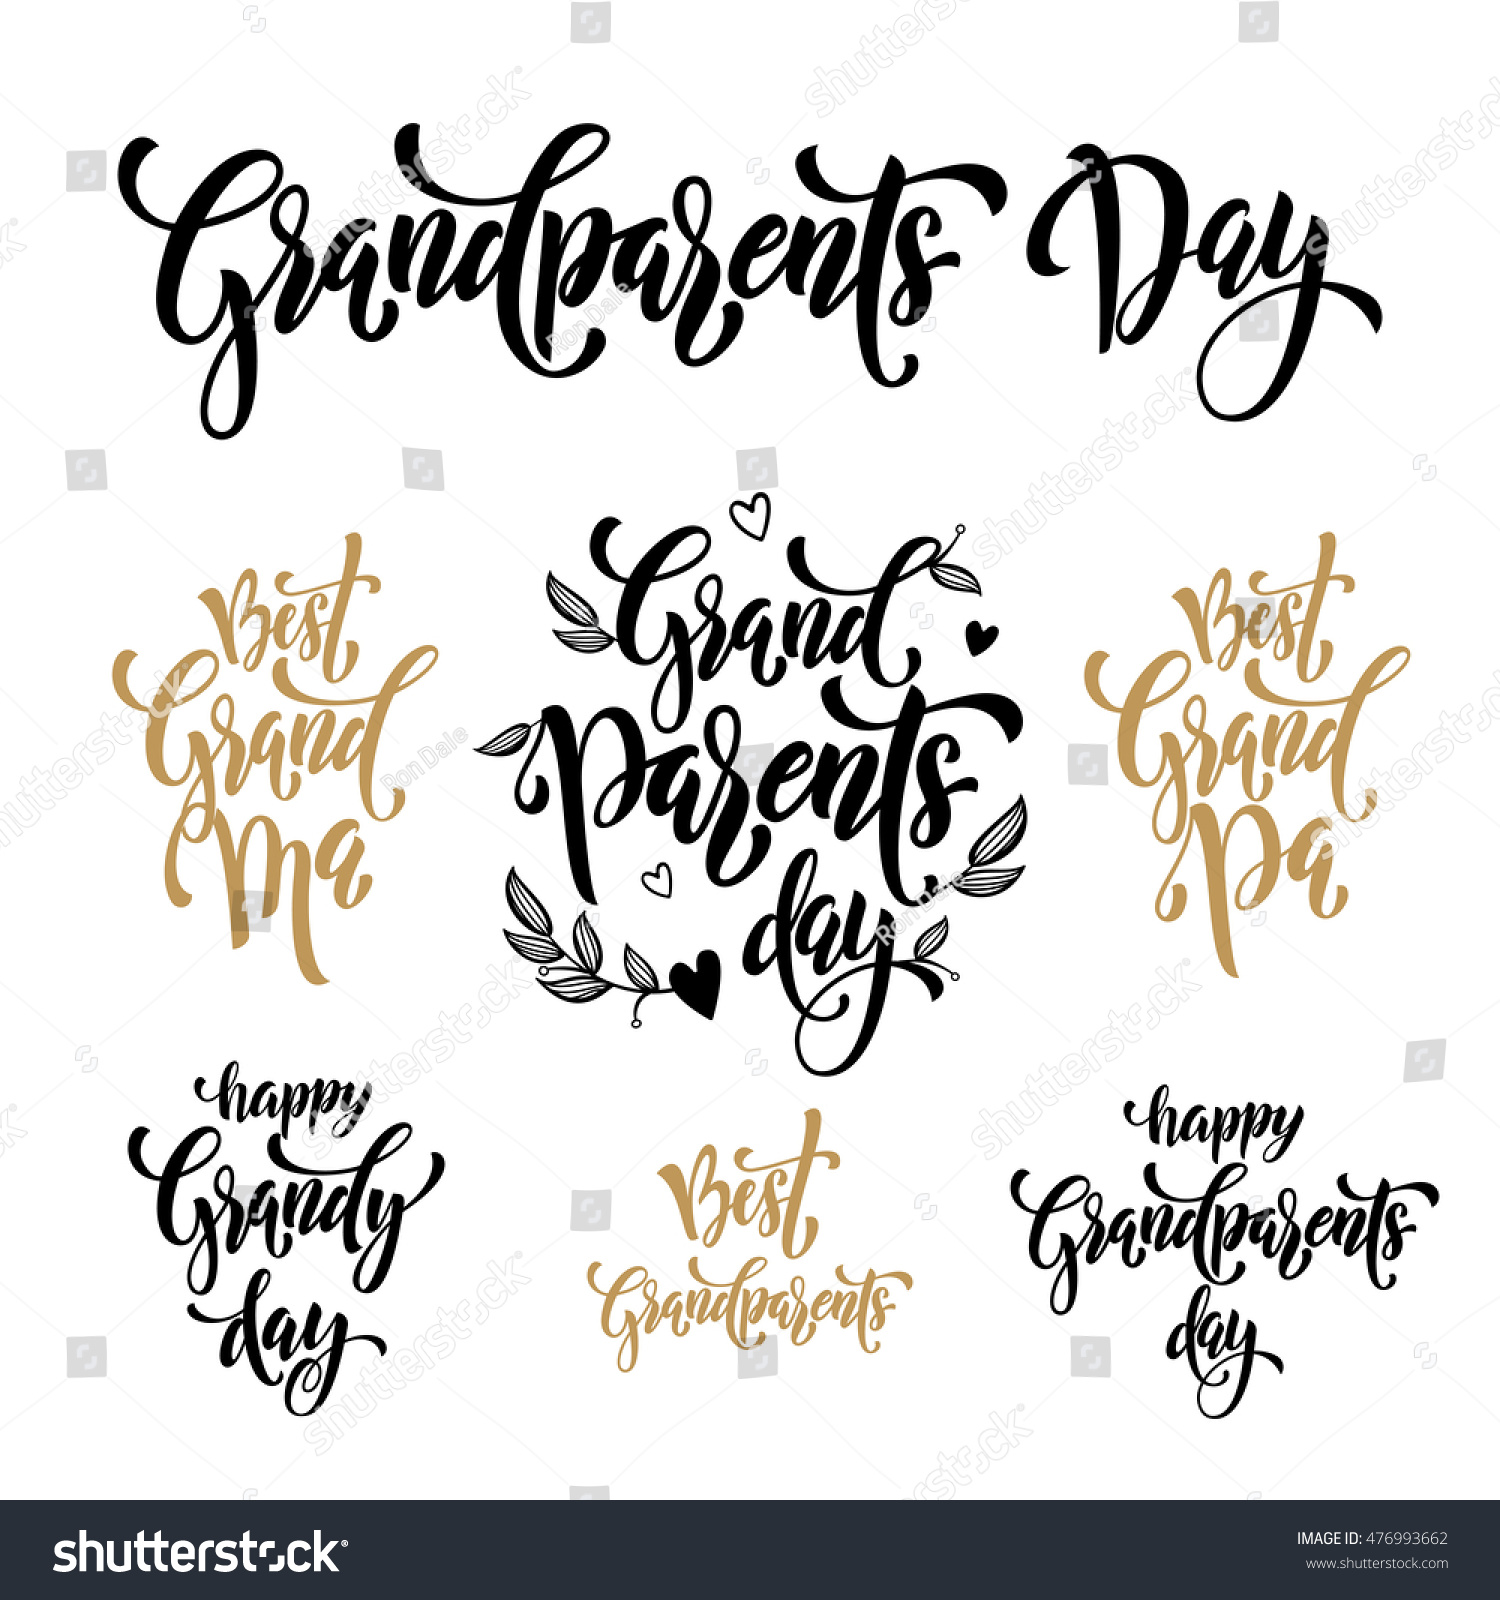 Happy Grandparents Day Modern Lettering Grandfather Stock Vector